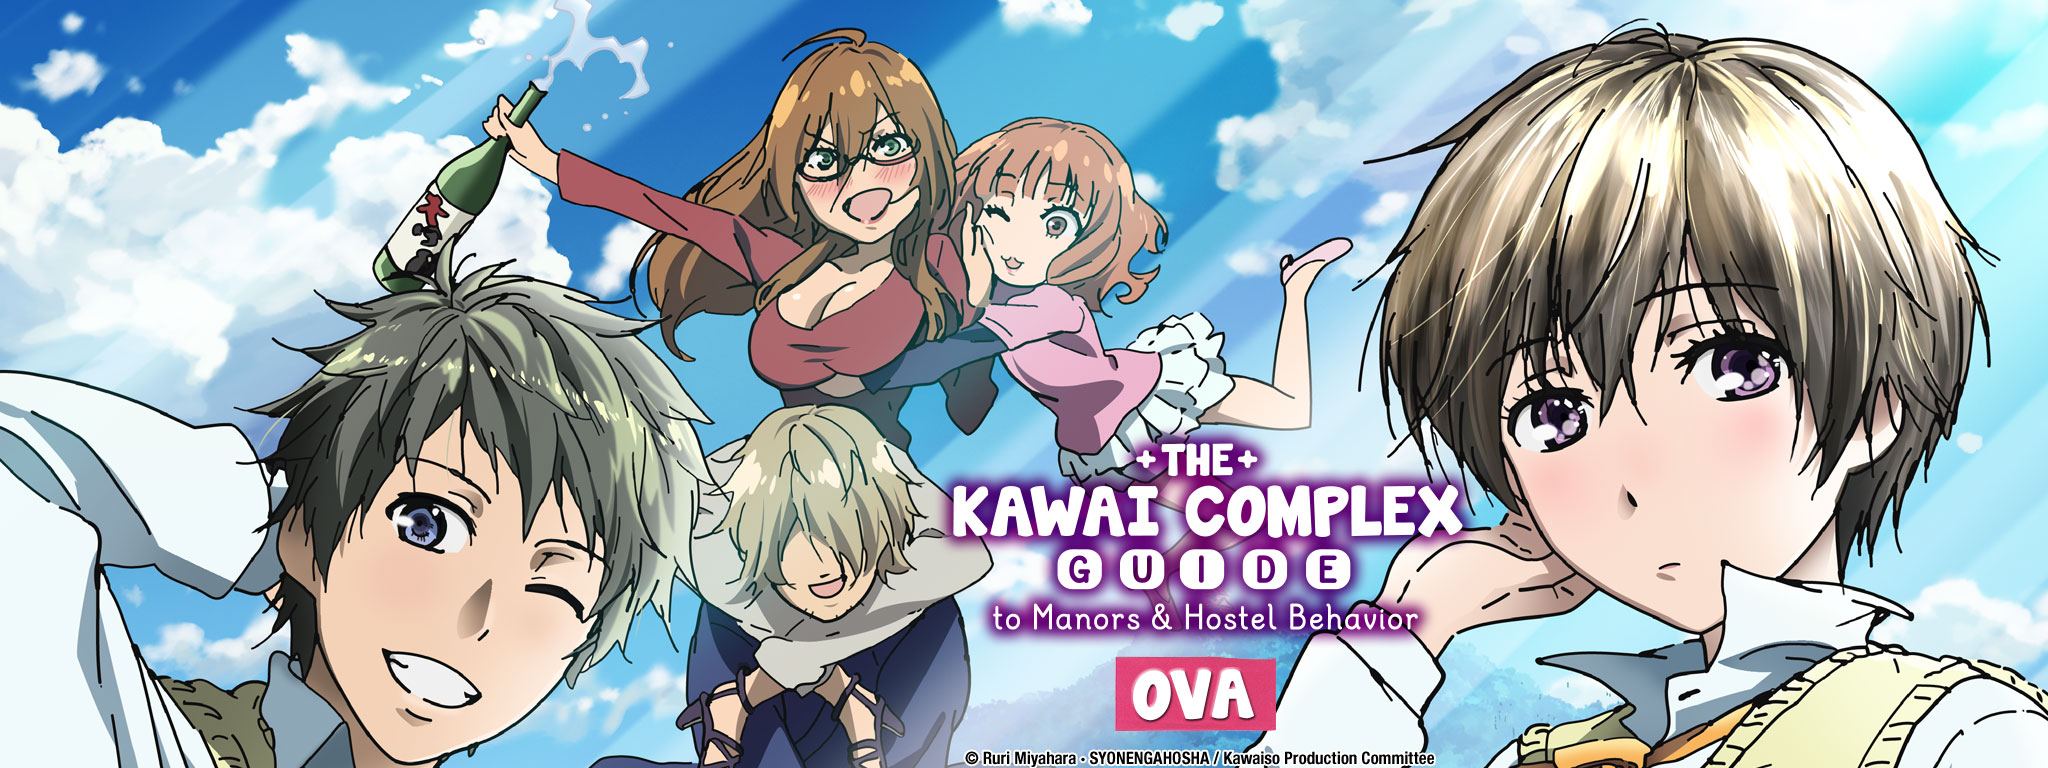 The Kawai Complex Guide to Manors and Hostel Behavior OVA